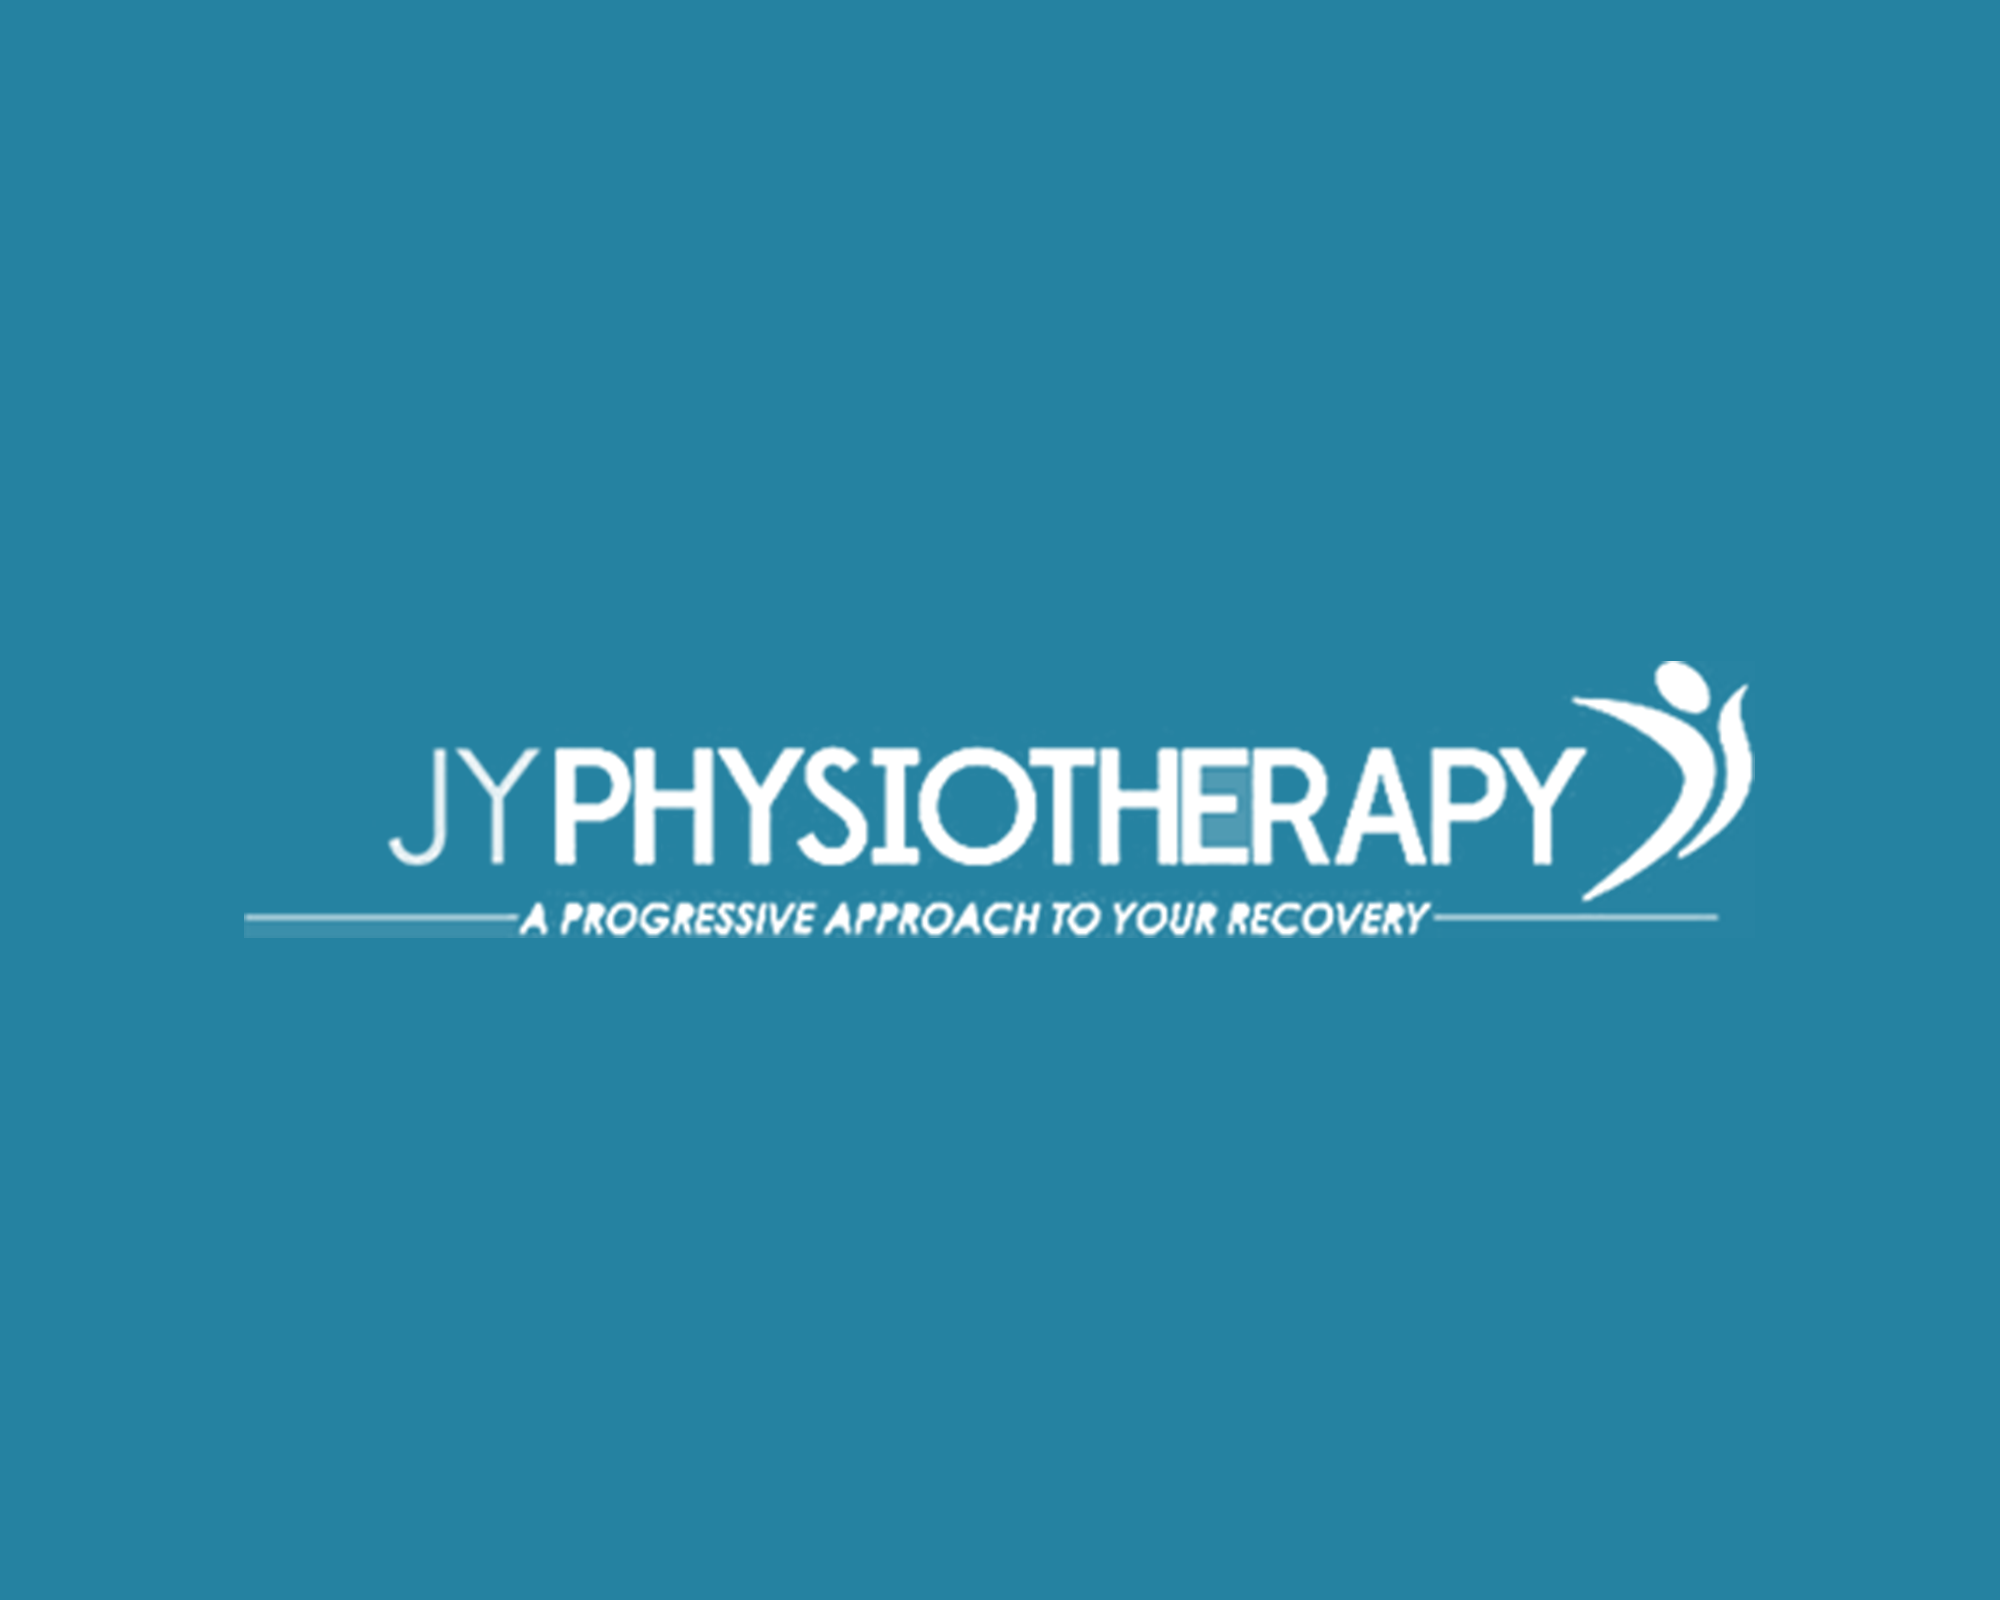 jy physiotherapy Logo